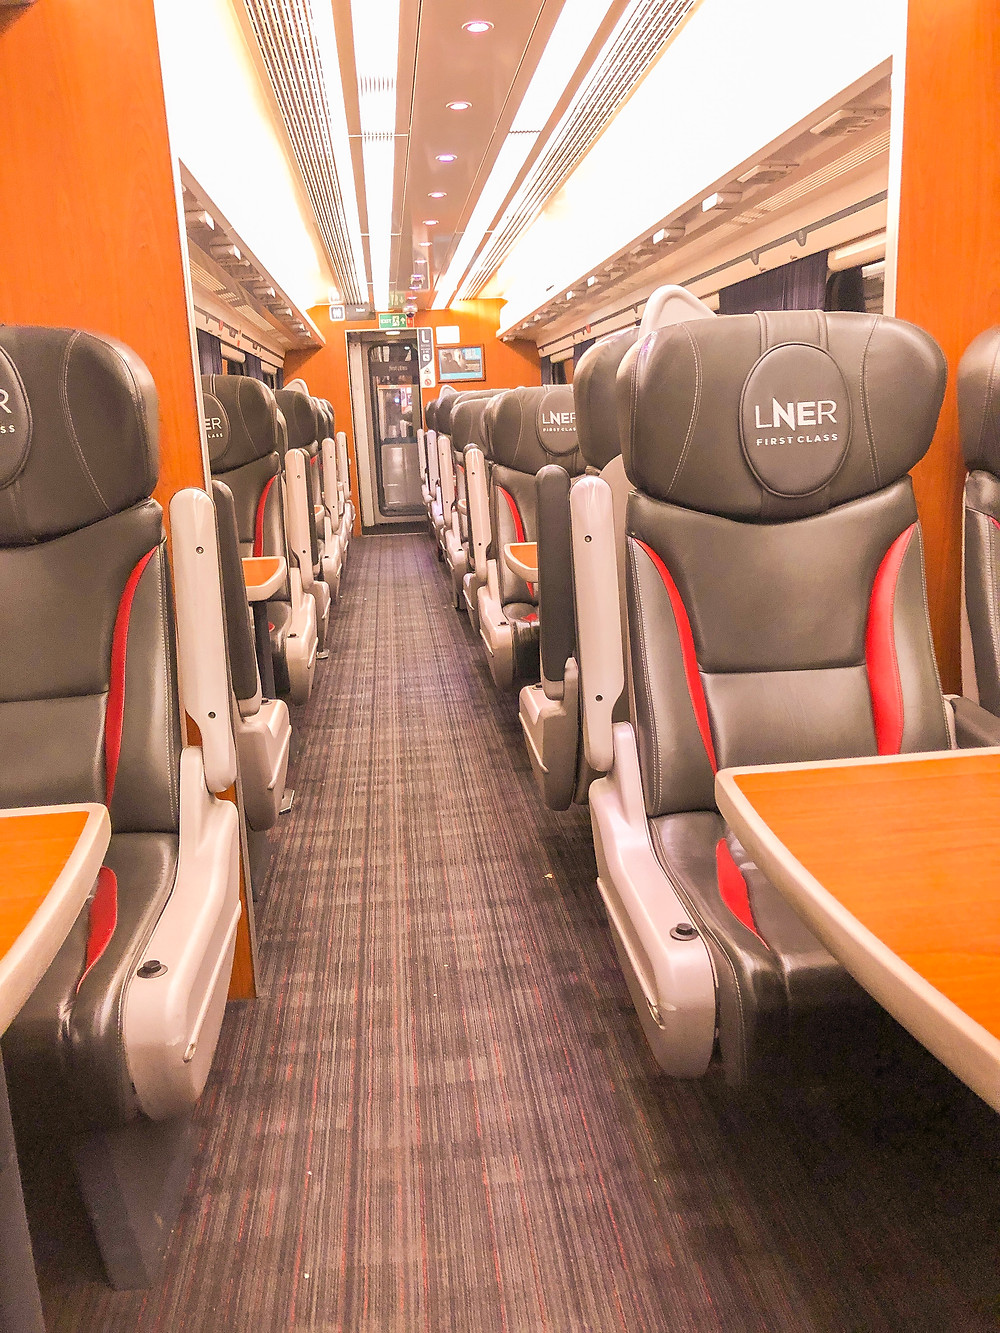 seats in a train carriage